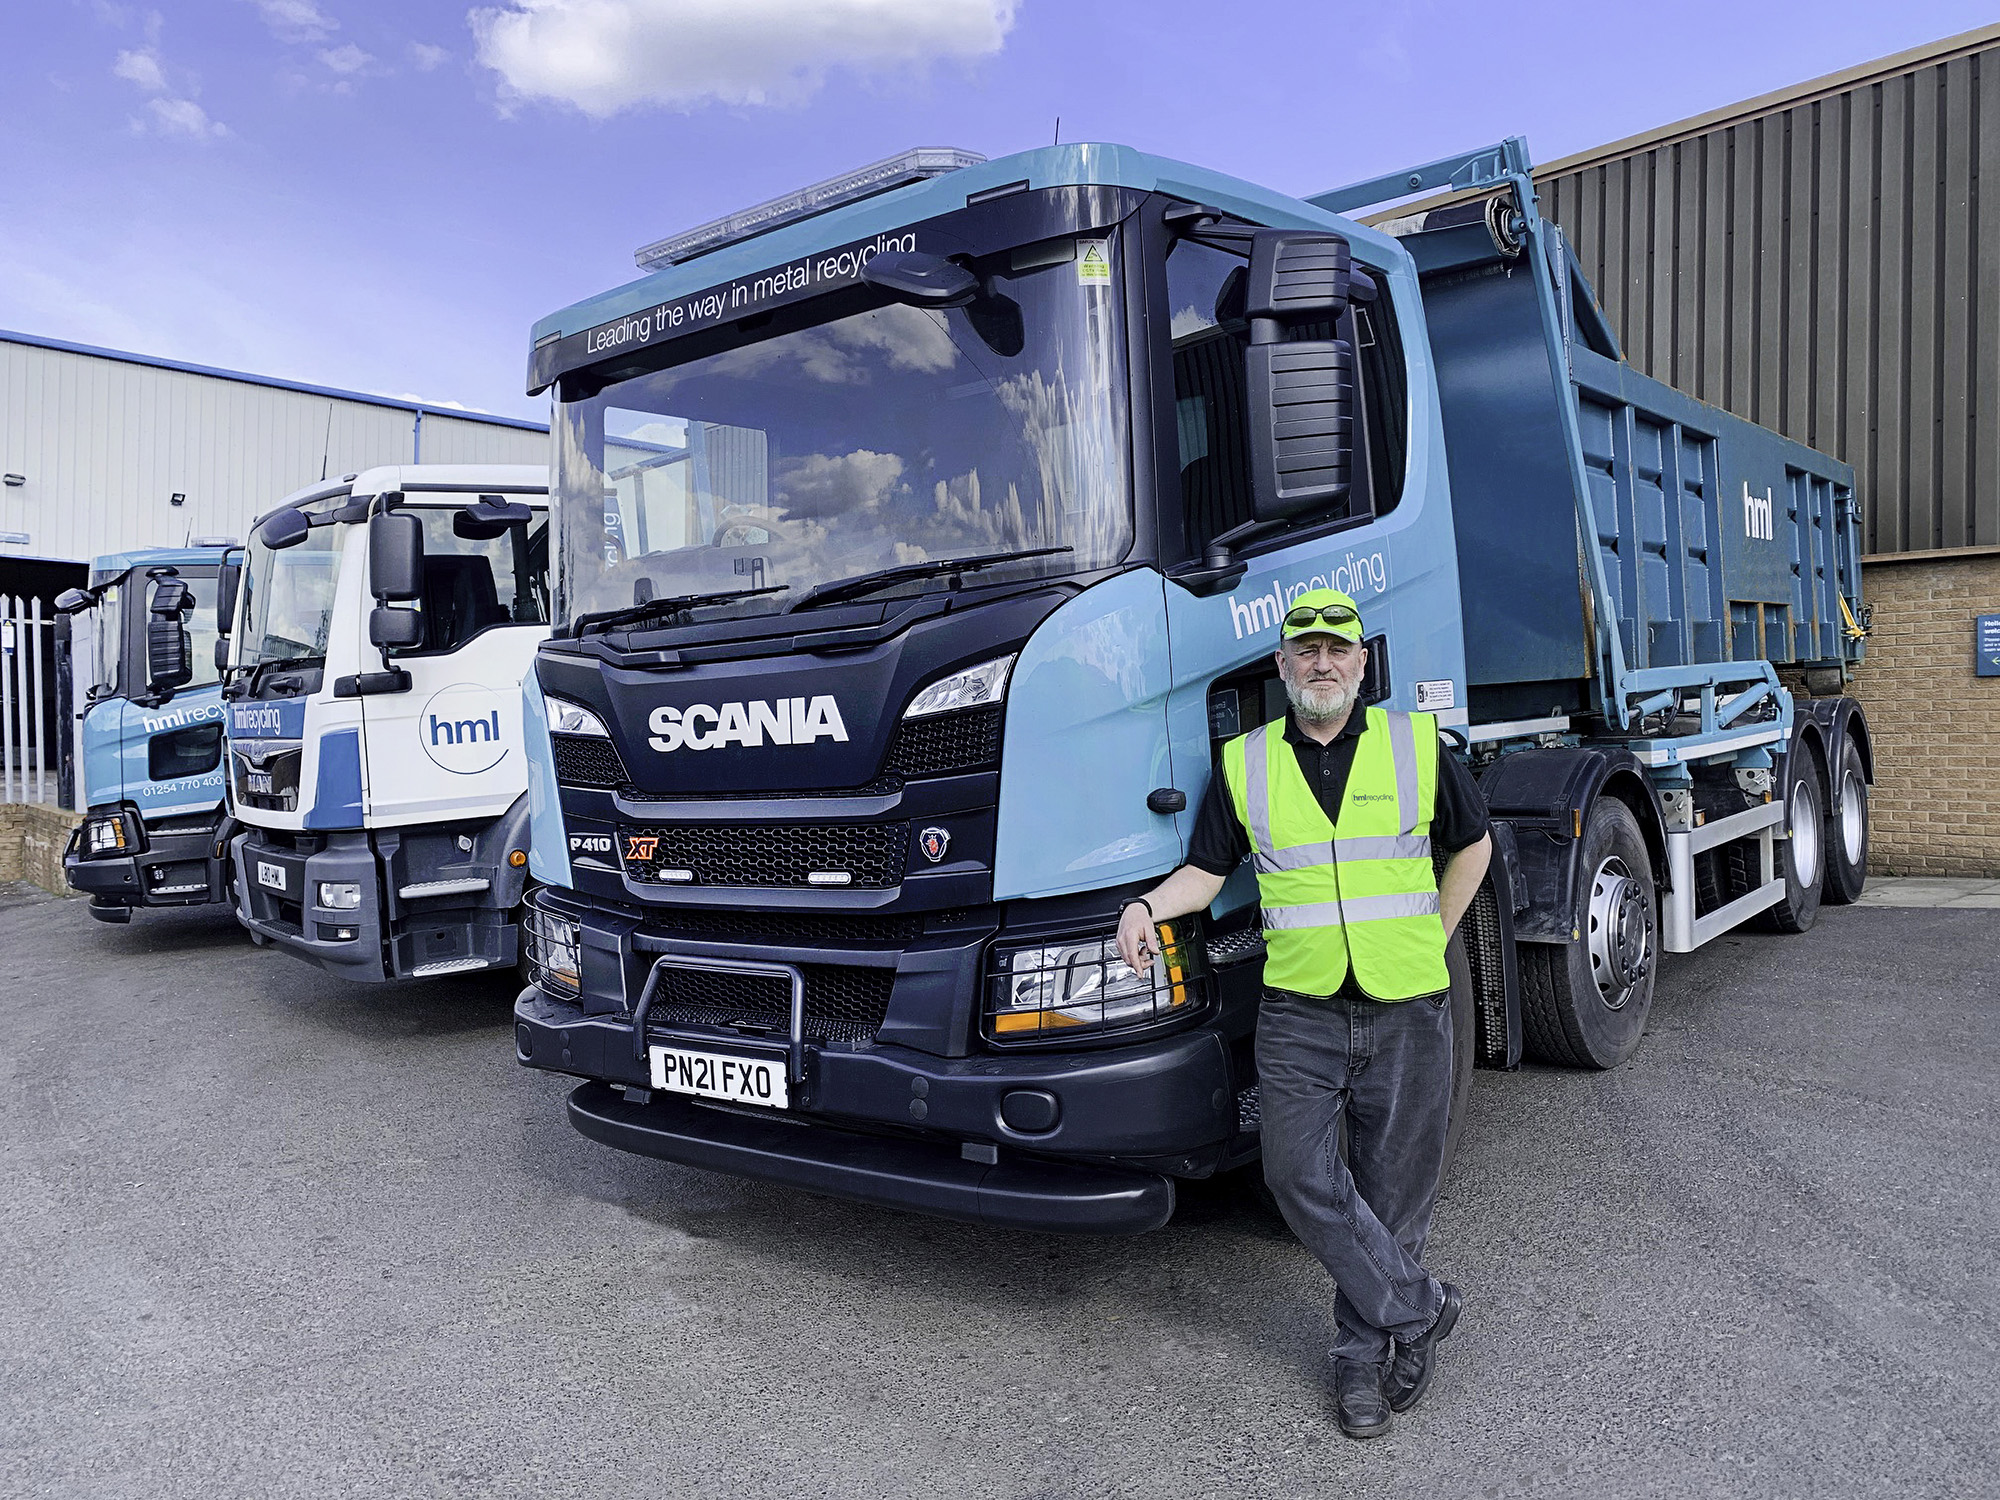 HML RECYCLING REDUCE THEIR CARBON FOOTPRINT WITH A £140K INVESTMENT